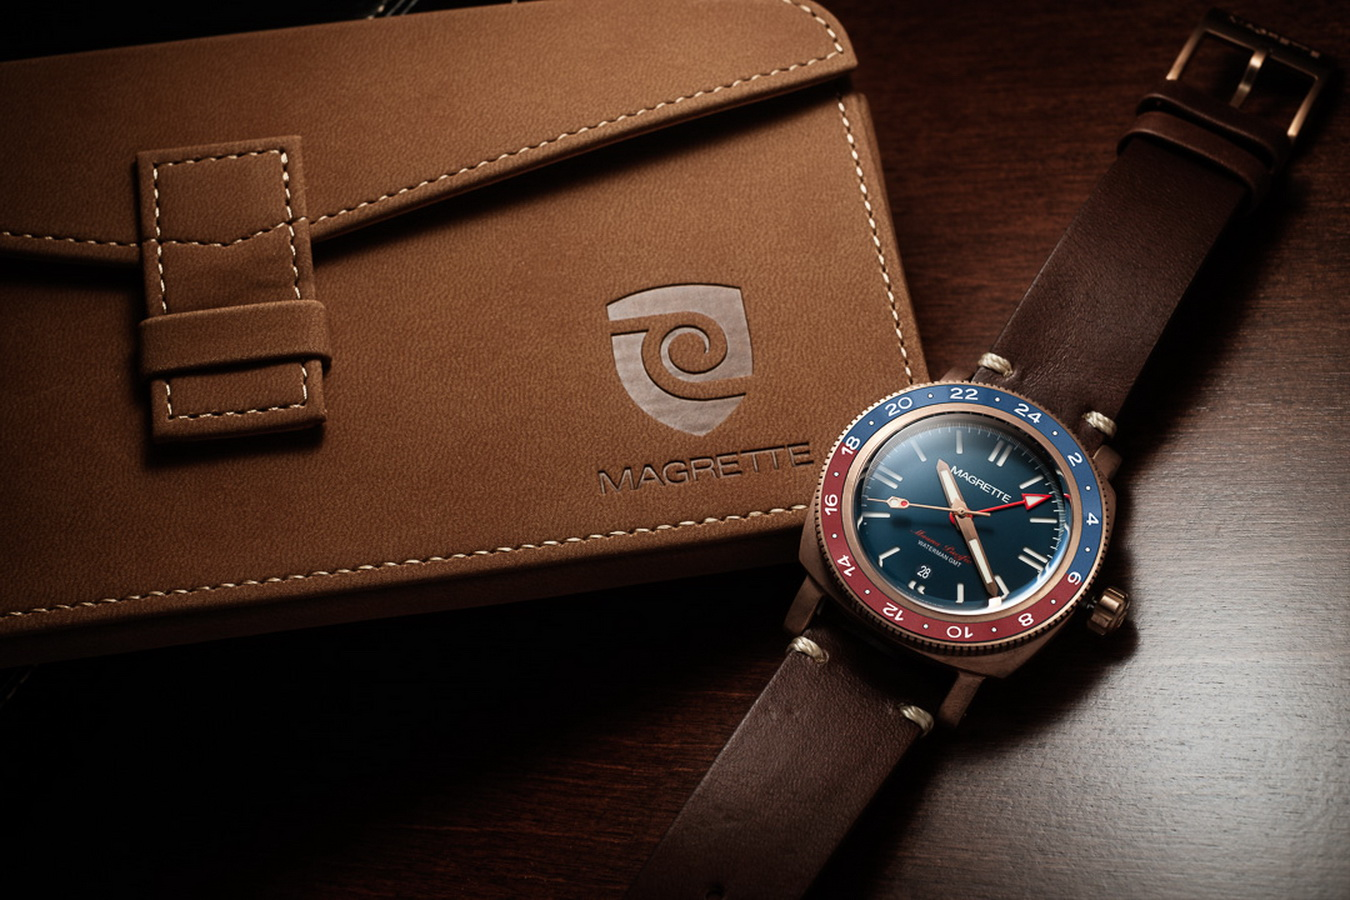 Magrette's new Moana Pacific Waterman GMT MAGRETTE%2BMoana%2BPacific%2BWATERMAN%2BGMT%2B01